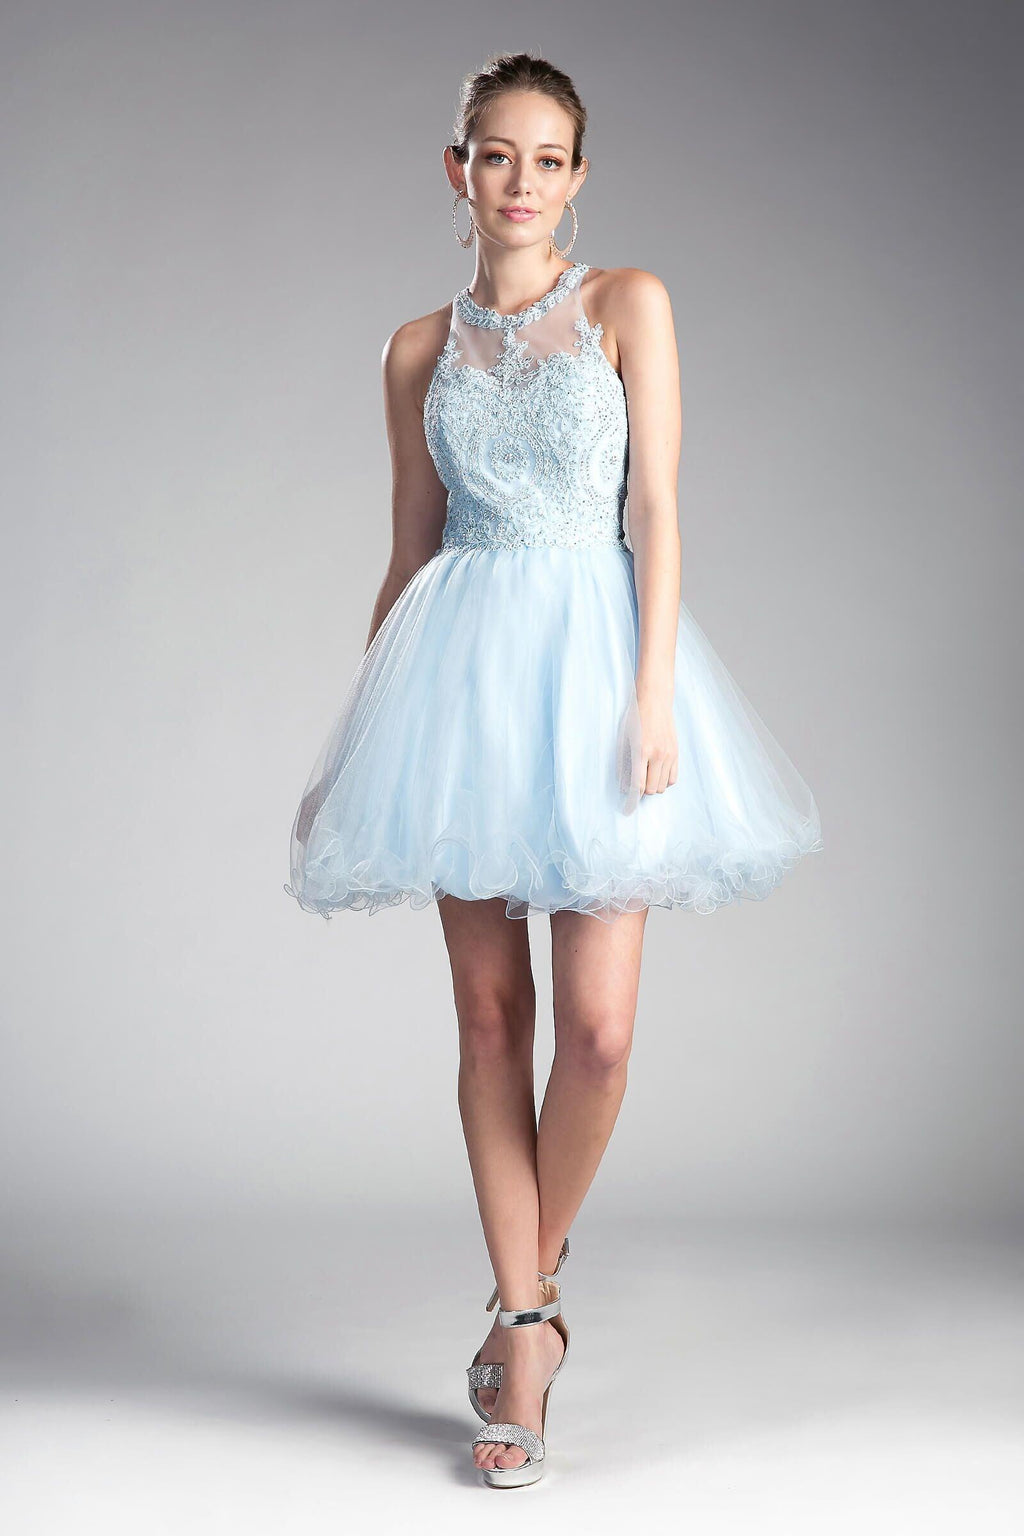 Short Prom Halter Neck Homecoming Dress - The Dress Outlet Baby Blue May Queen